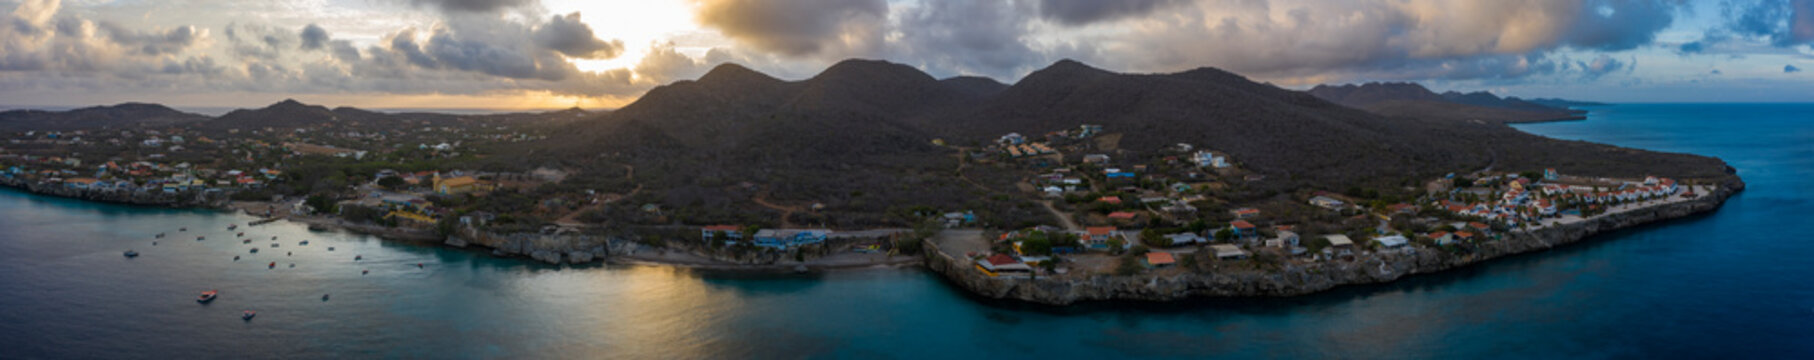 Aerial view above scenery of Curacao, the Caribbean with ocean and coast